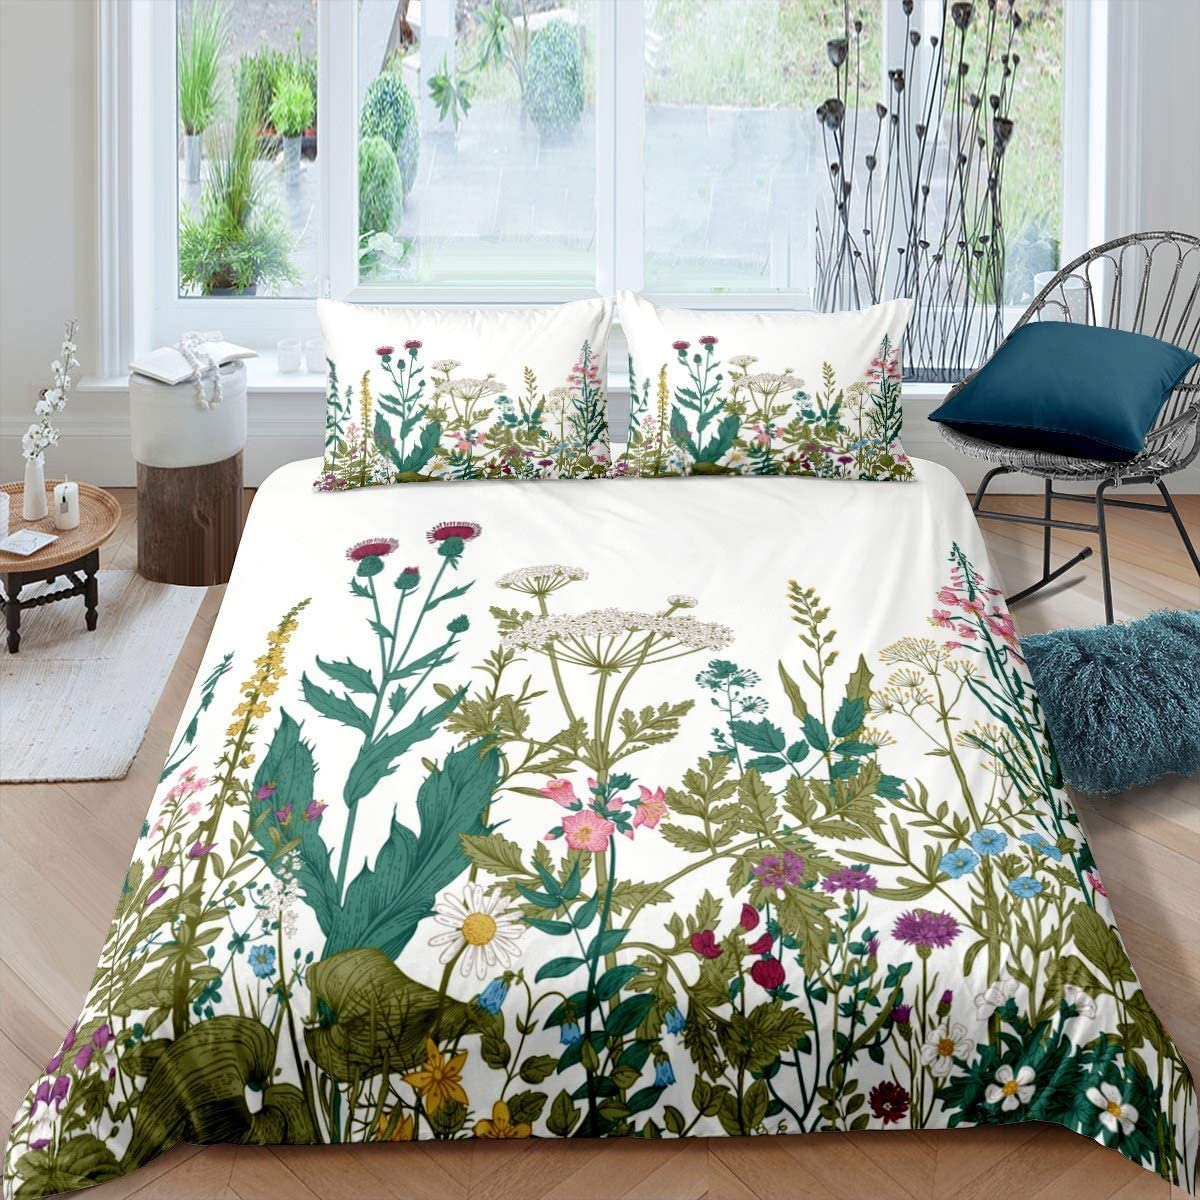 Feelyou Botanical Duvet Cover Floral Print Bedding Set for Kids Women Adults Leaves and Branches Comforter Cover Blossom Flowers Bedspread Cover Bedroom Collection 2Pcs Twin Size